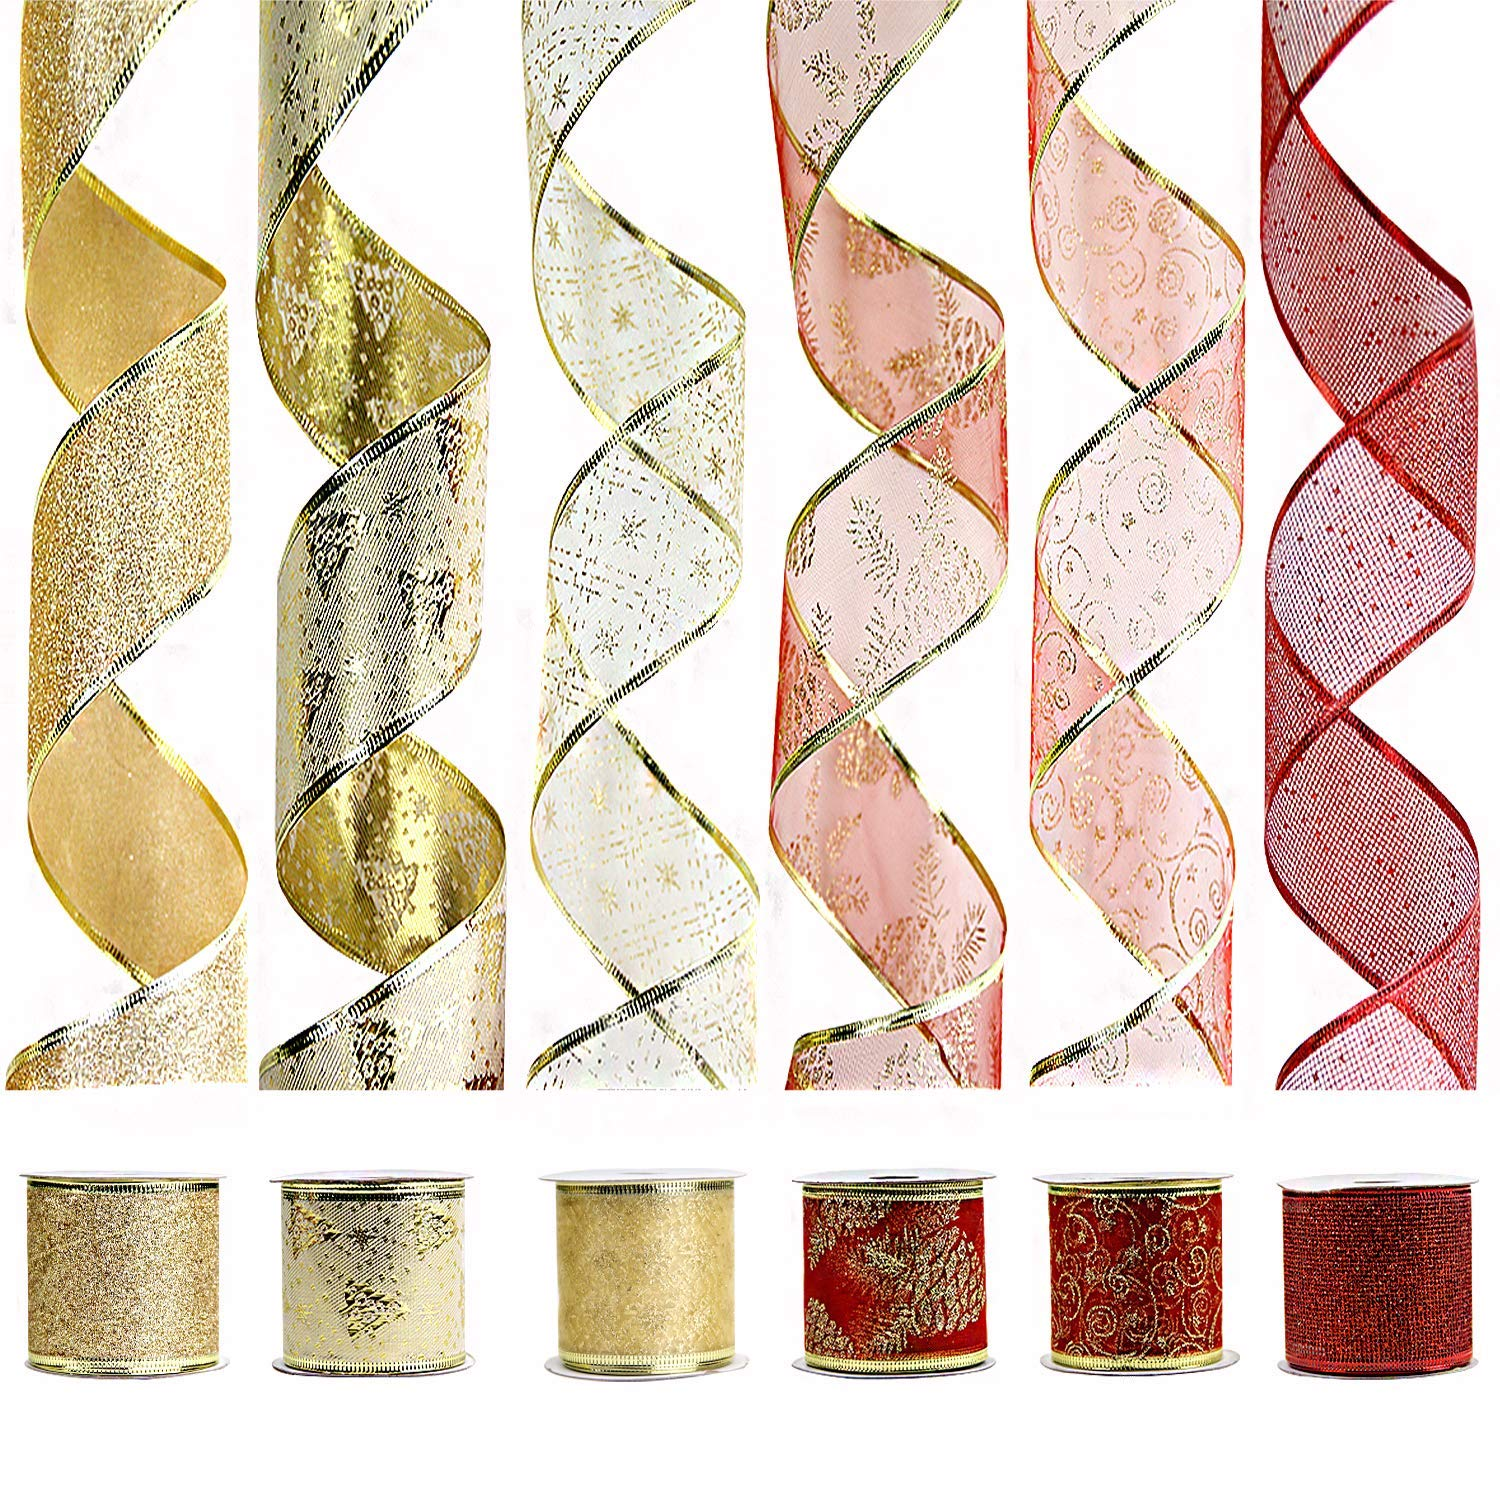 by 2-1//2 inch 36 Yards 6 Roll x 6 yd VATIN Wired Halloween Ribbon Assorted Swirl Sheer Organza Glitter Crafts Gift Wrapping Holiday Ribbons Halloween Design Decorations